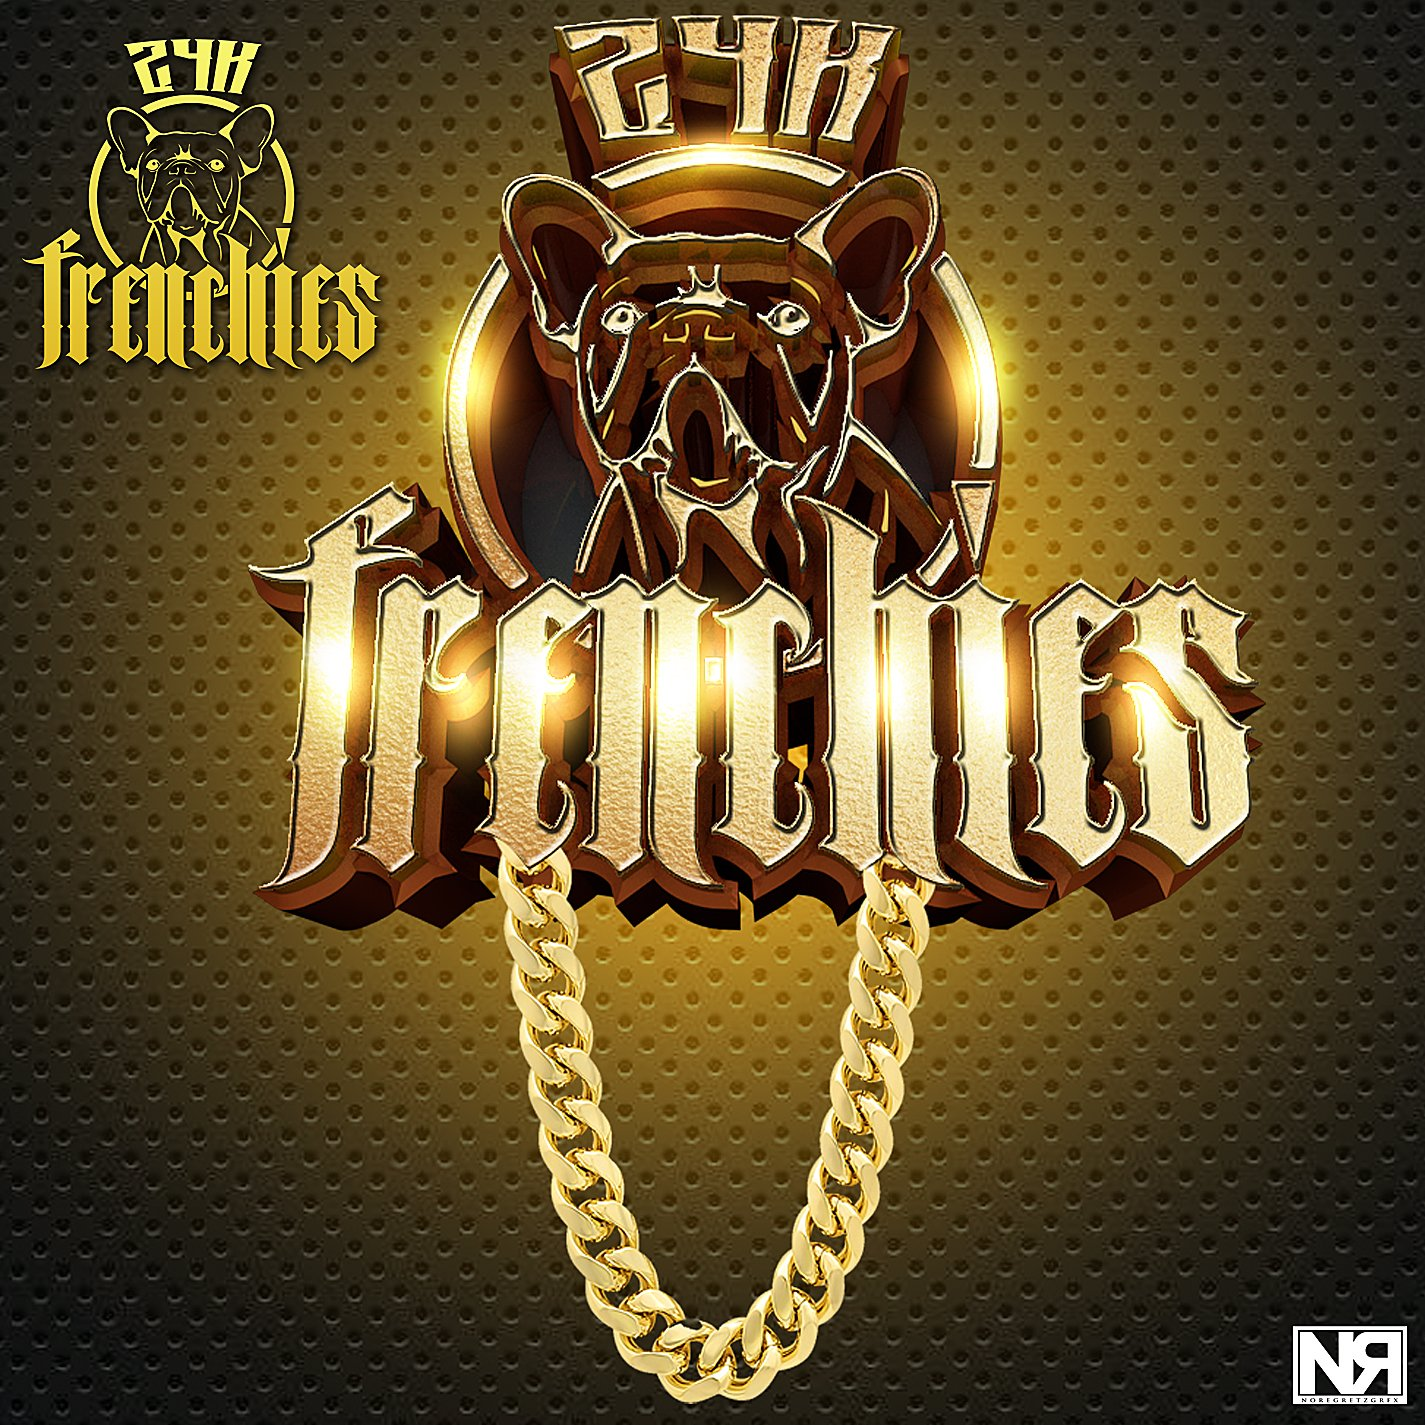 24k Frenchies